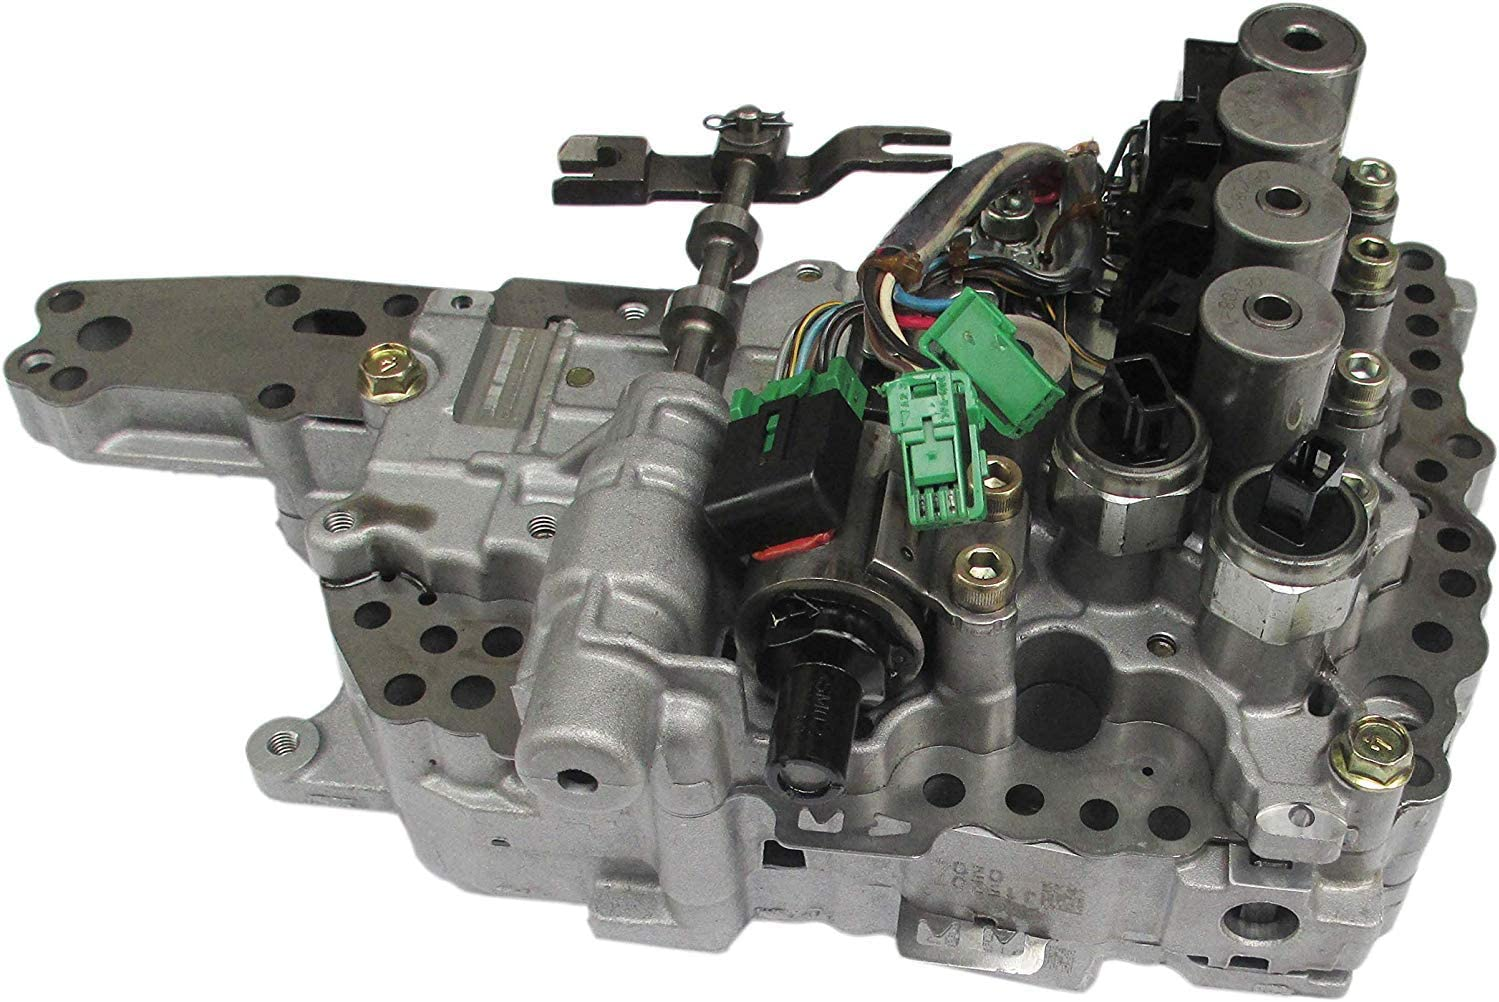 Remanufactured Gearbox CVT Valve Body RE0F10A for Nissan Altima Sentra Versa X-Trail Murano /…